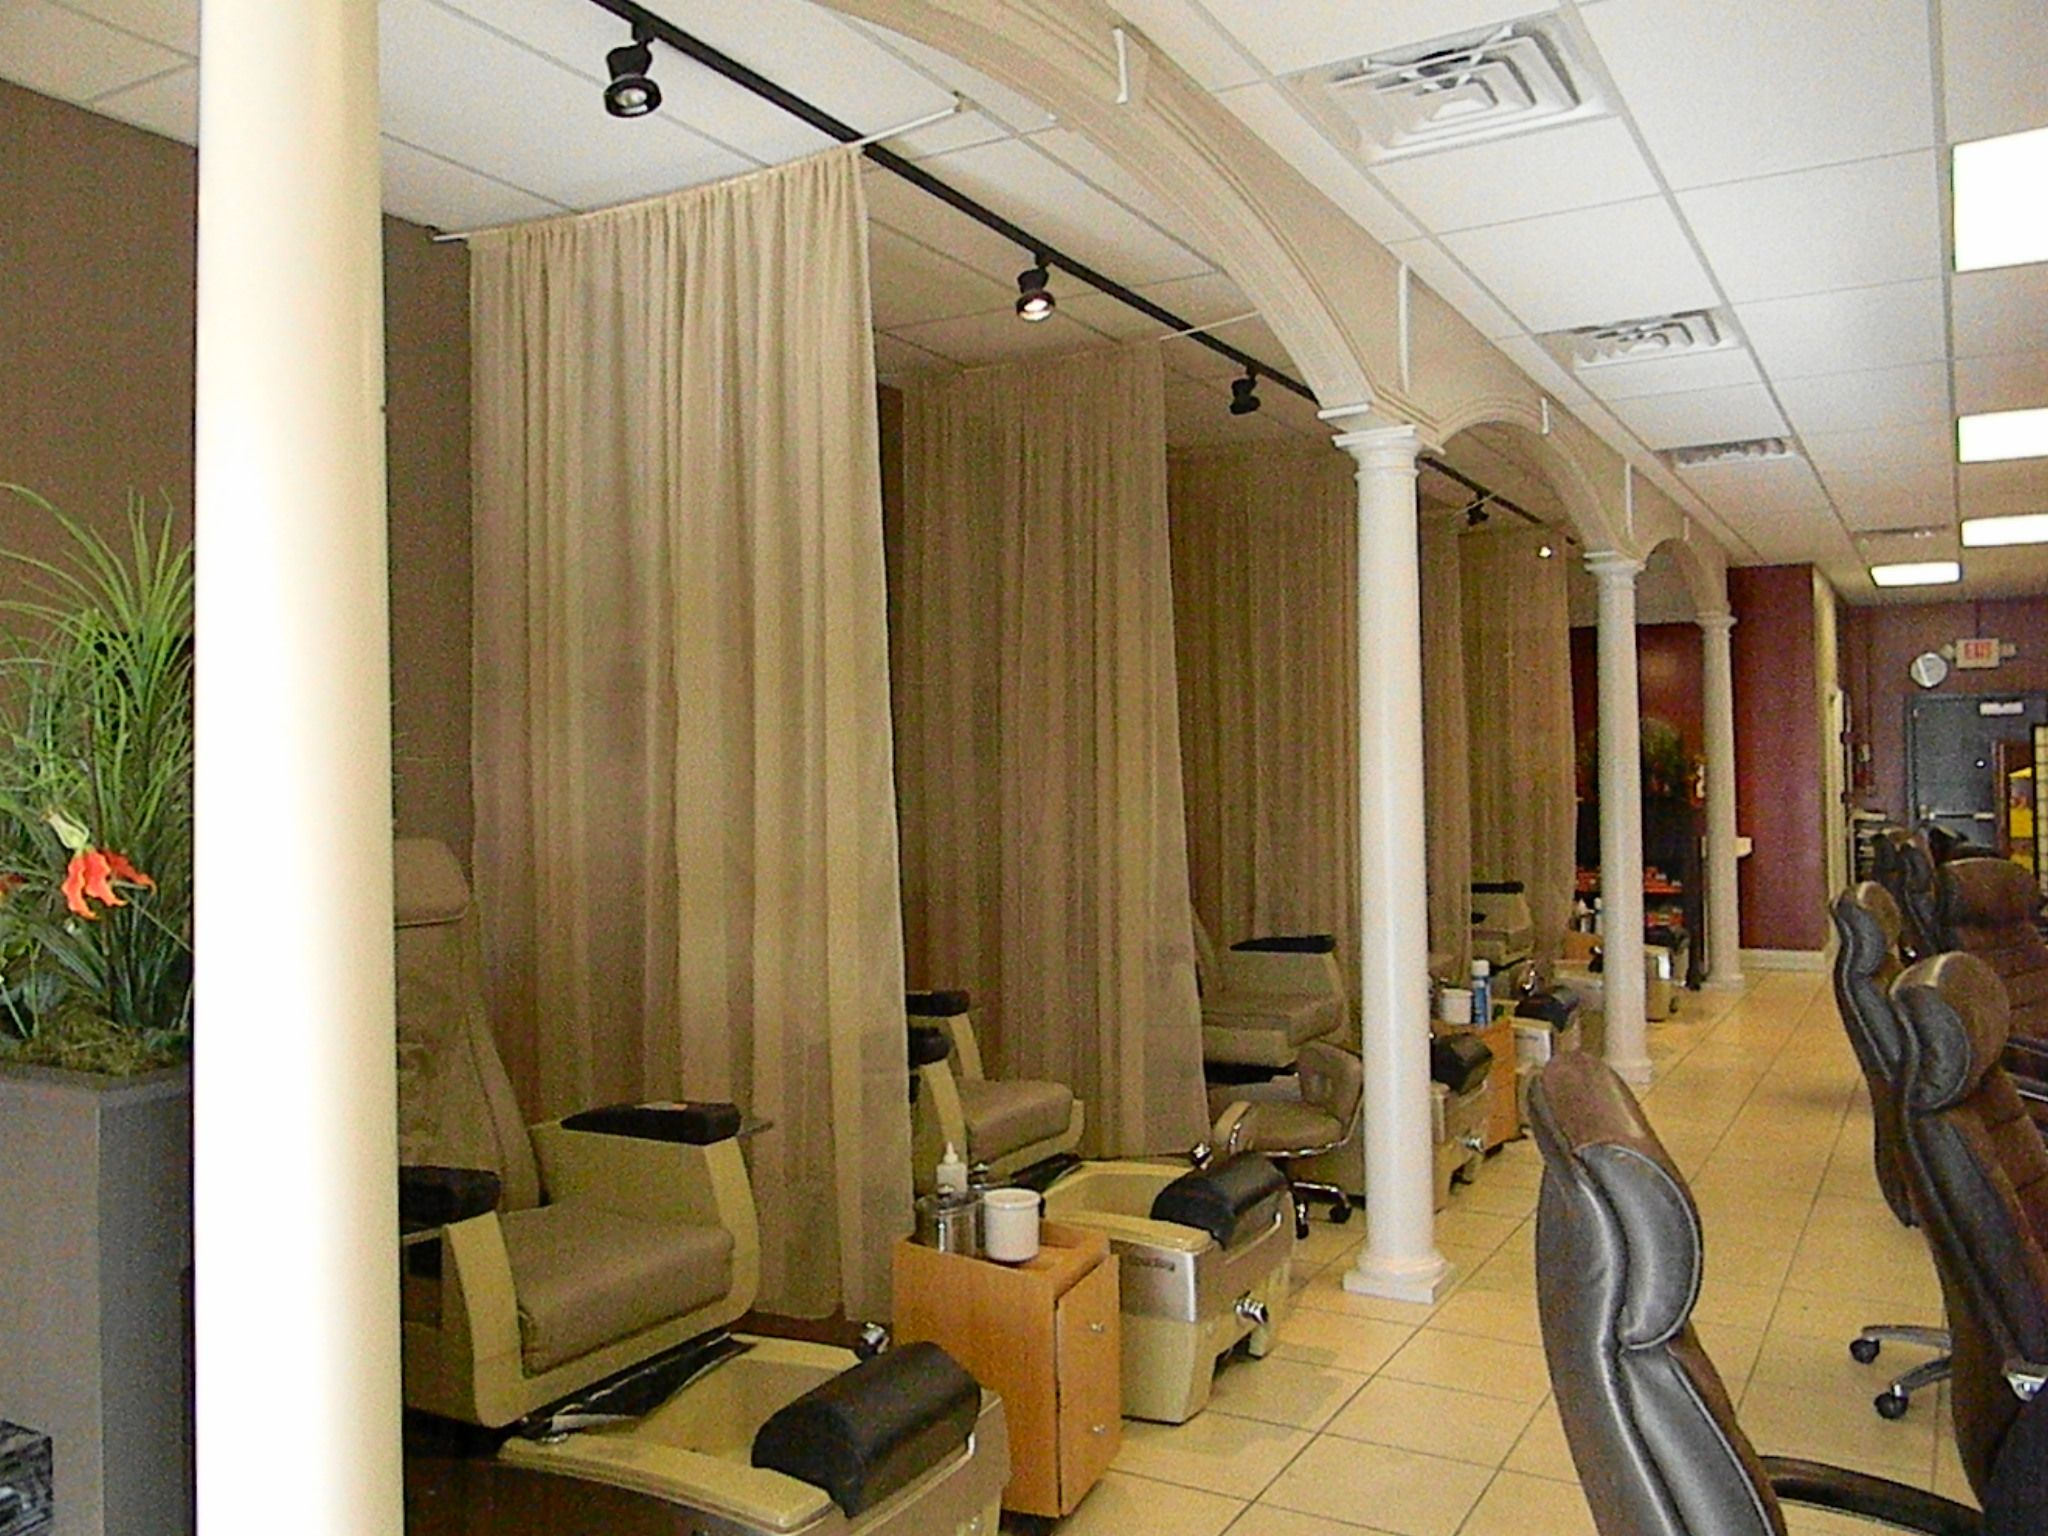 nail salon ideas design nail salon interior design ideas with low budget nail salon interior designs